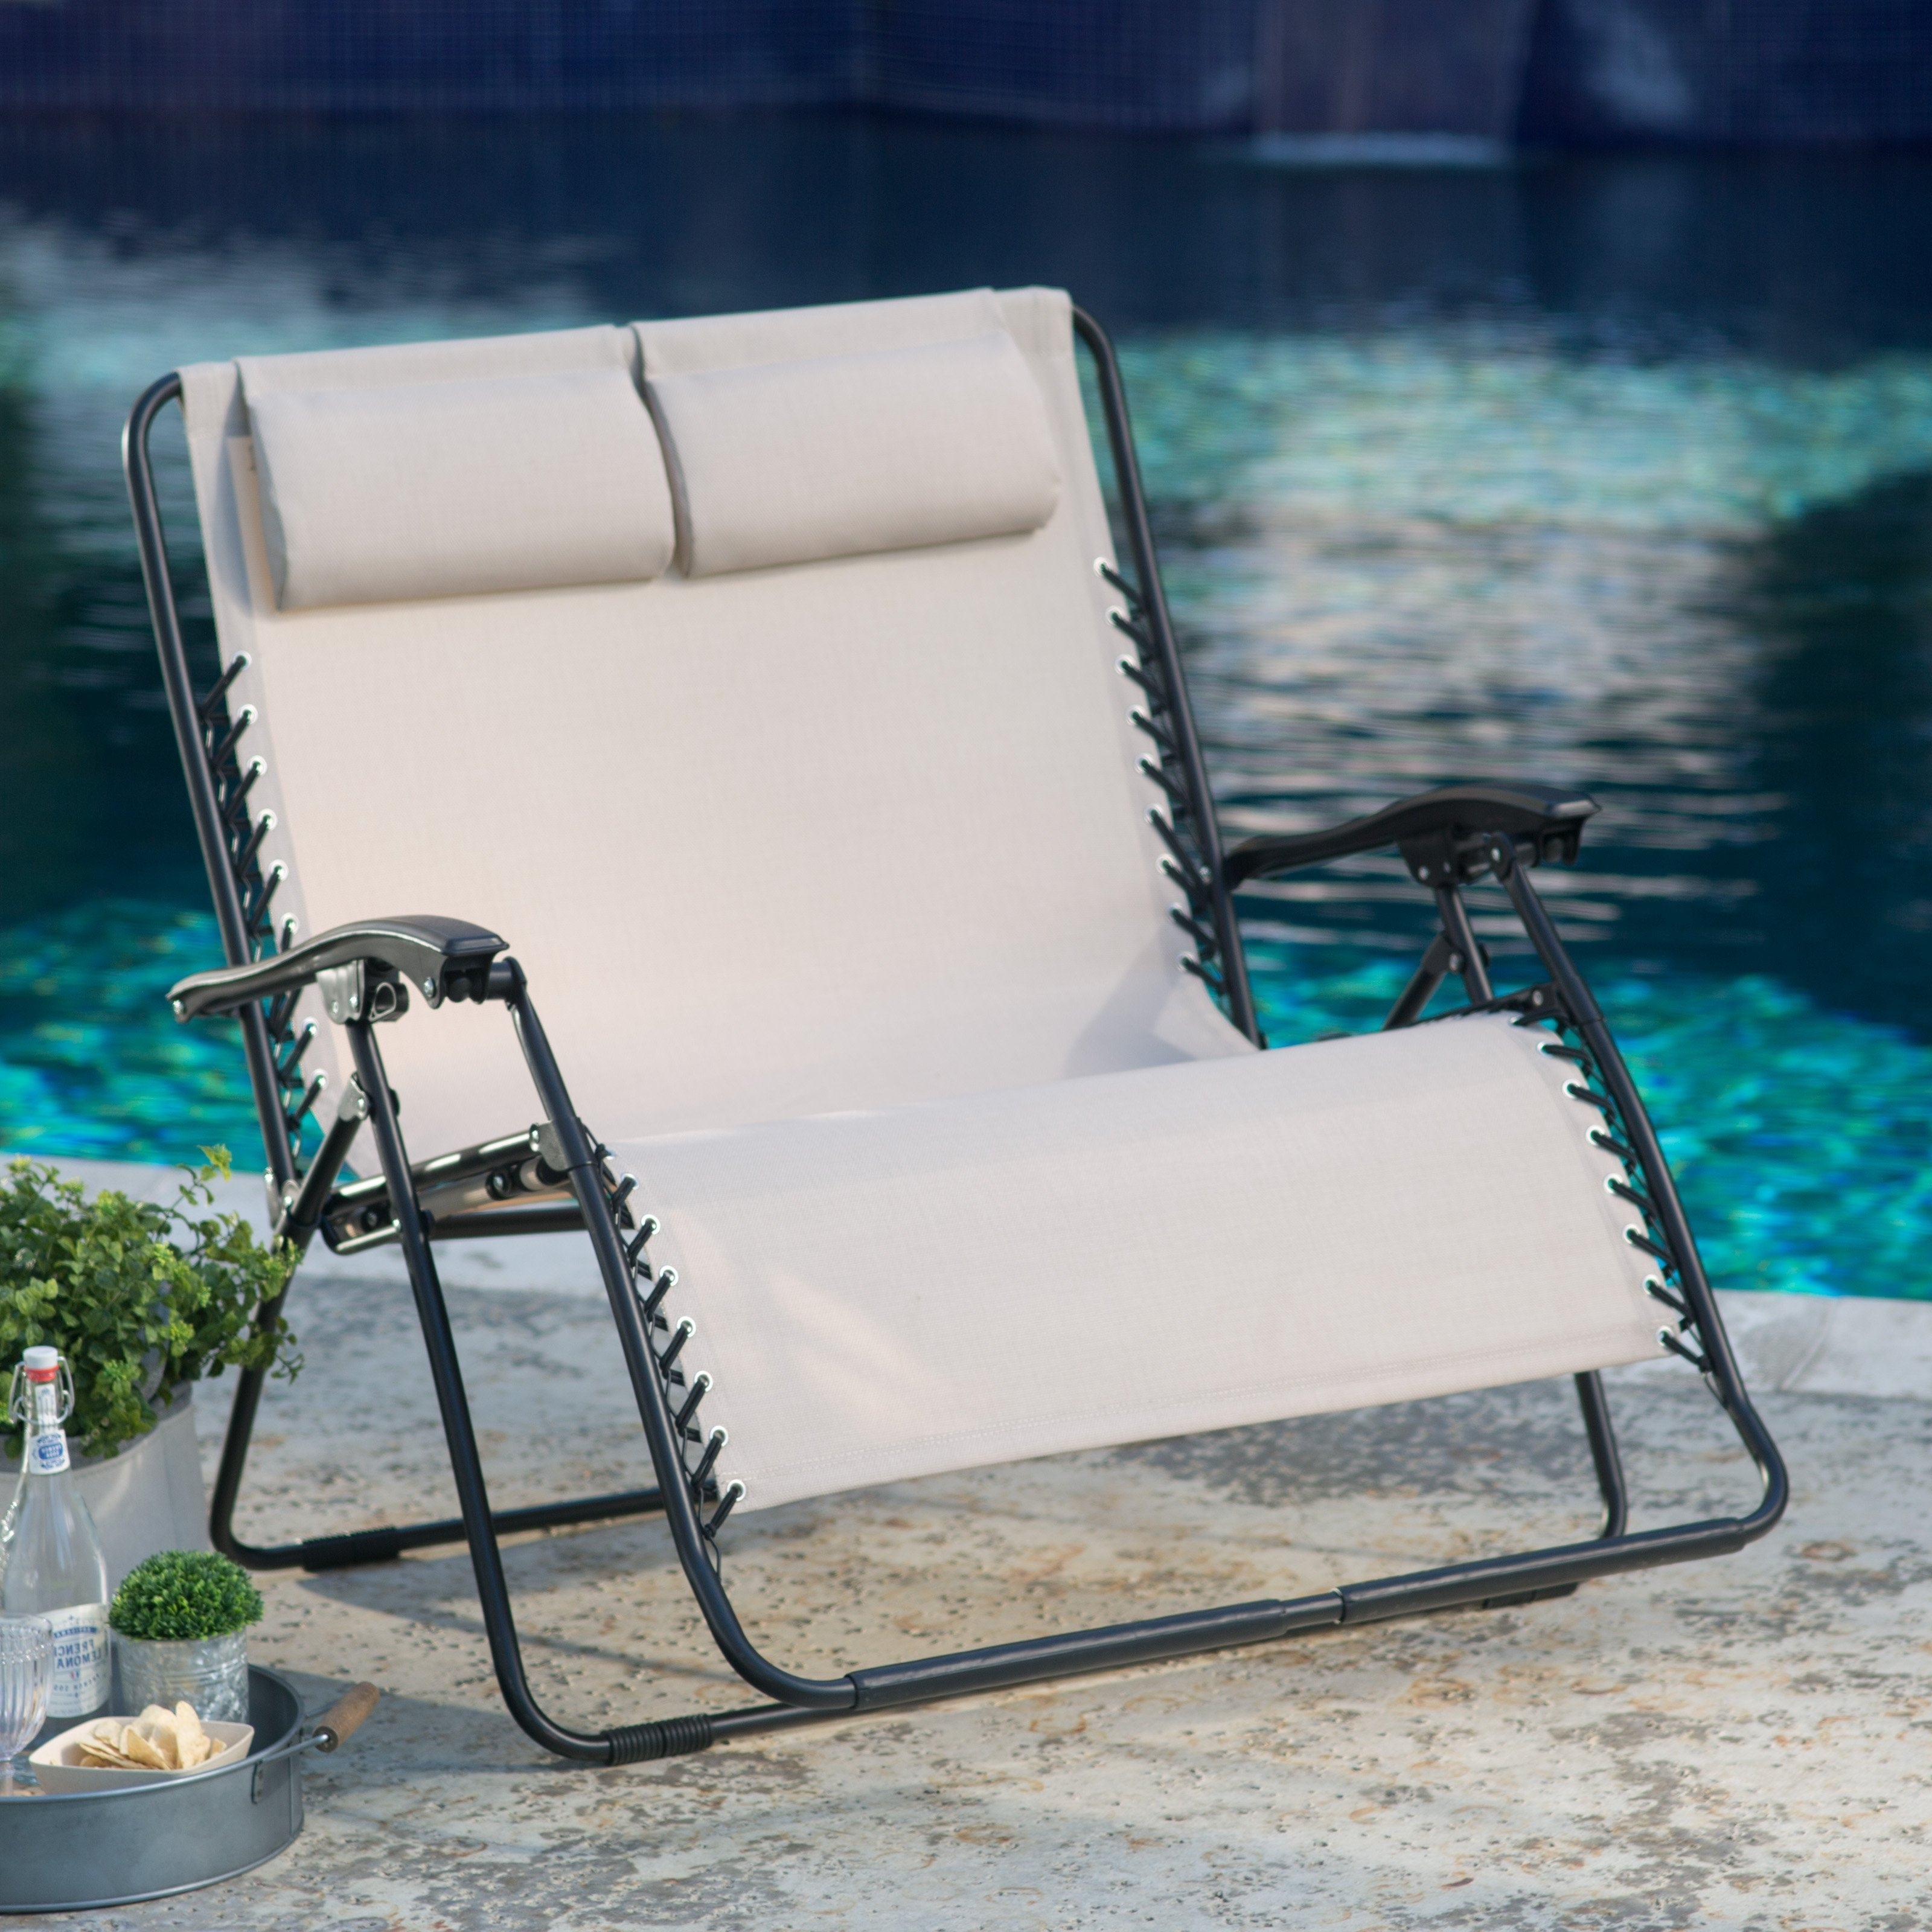 Preferred Extra Wide Outdoor Chaise Lounge Chairs Throughout Coral Coast Padded Extra Wide Zero Gravity Chair (View 10 of 15)